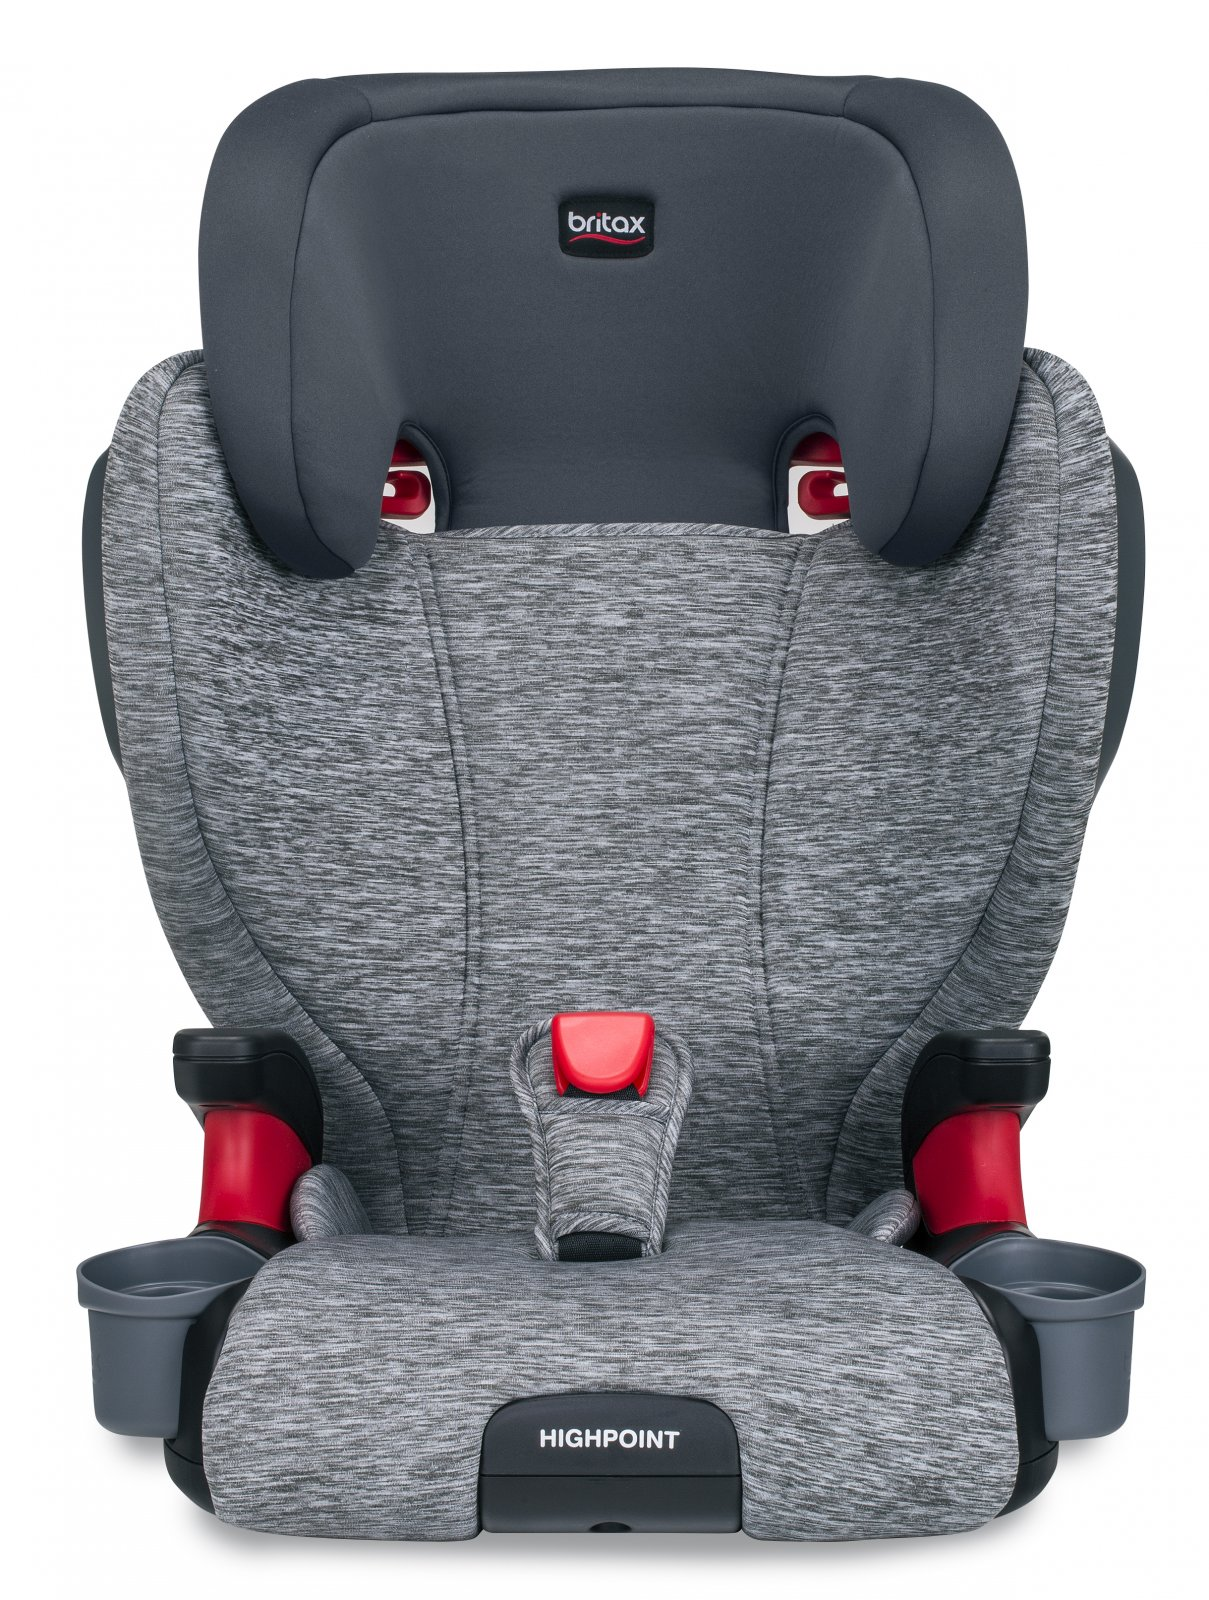 Britax | Highpoint | Backless Booster Seat